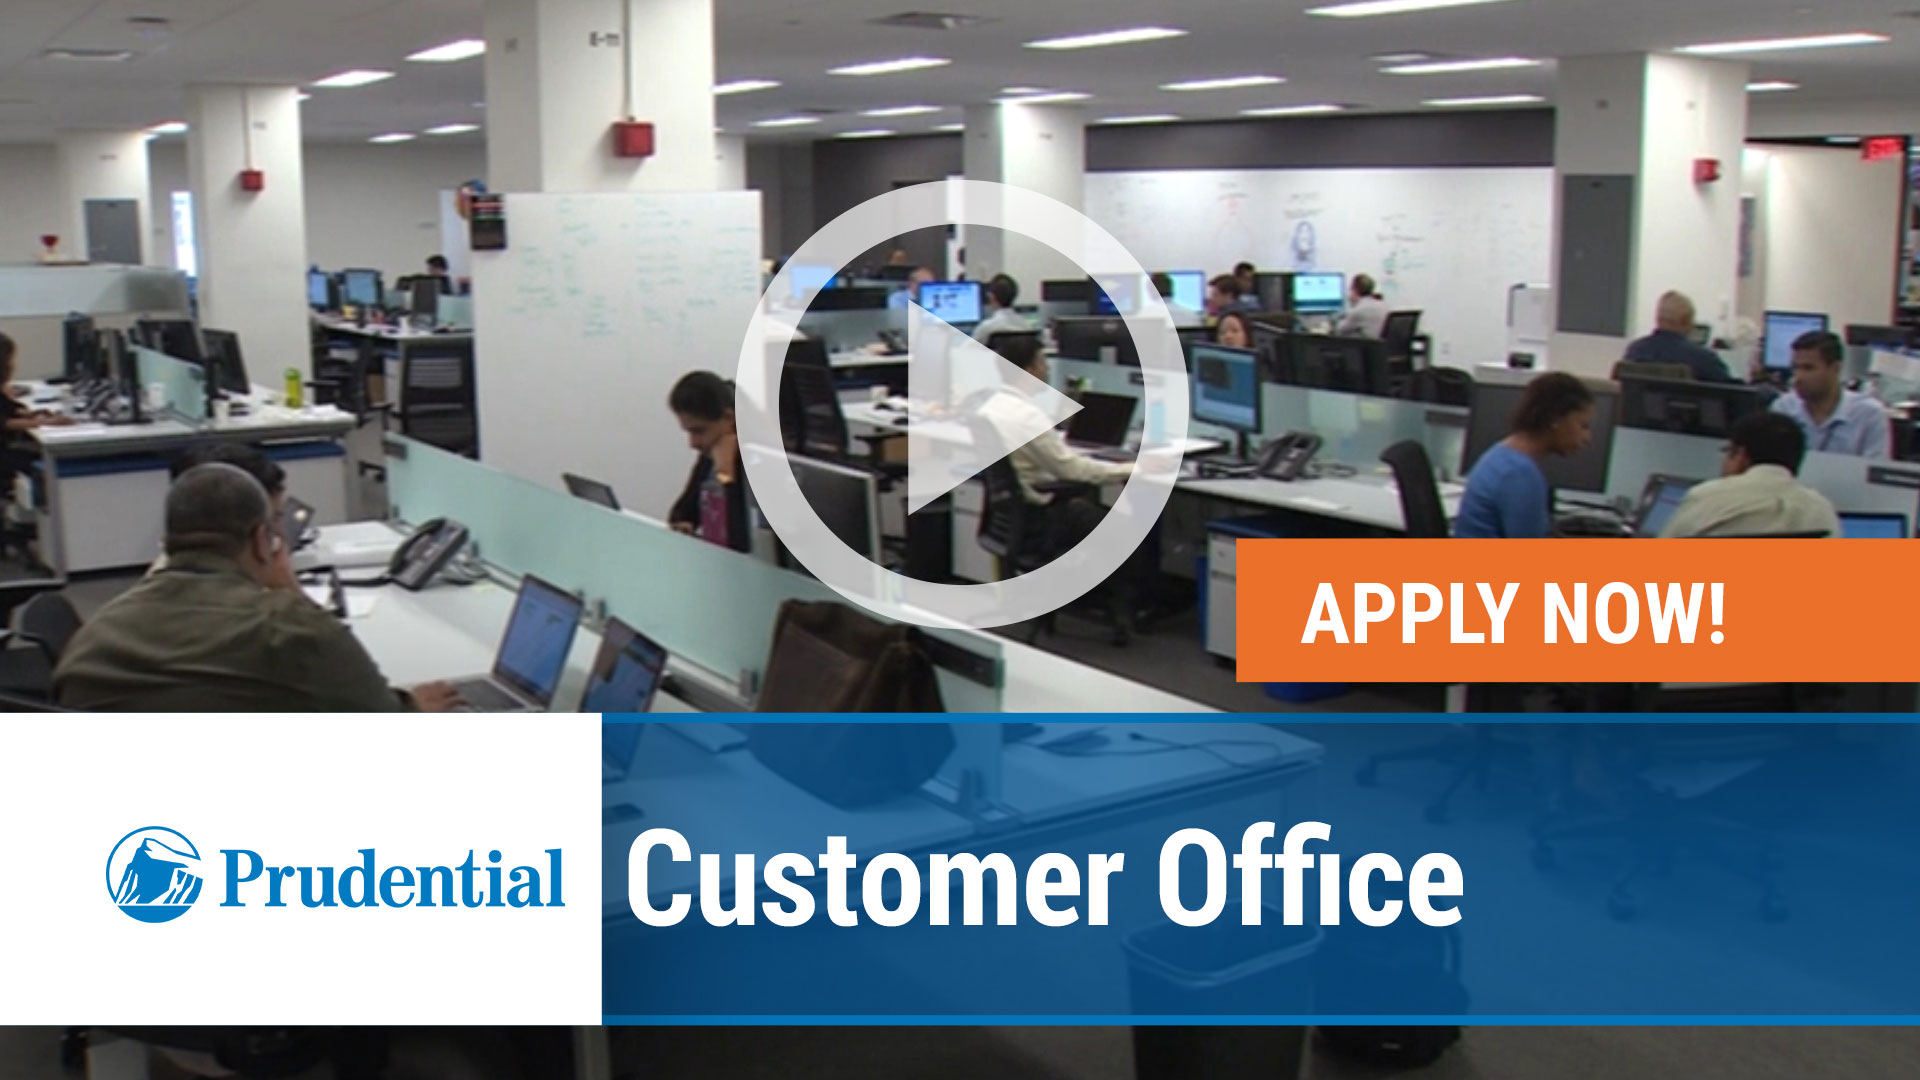 Watch our careers video for available job opening Customer Office in Newark NJ, Sunnyvale CA